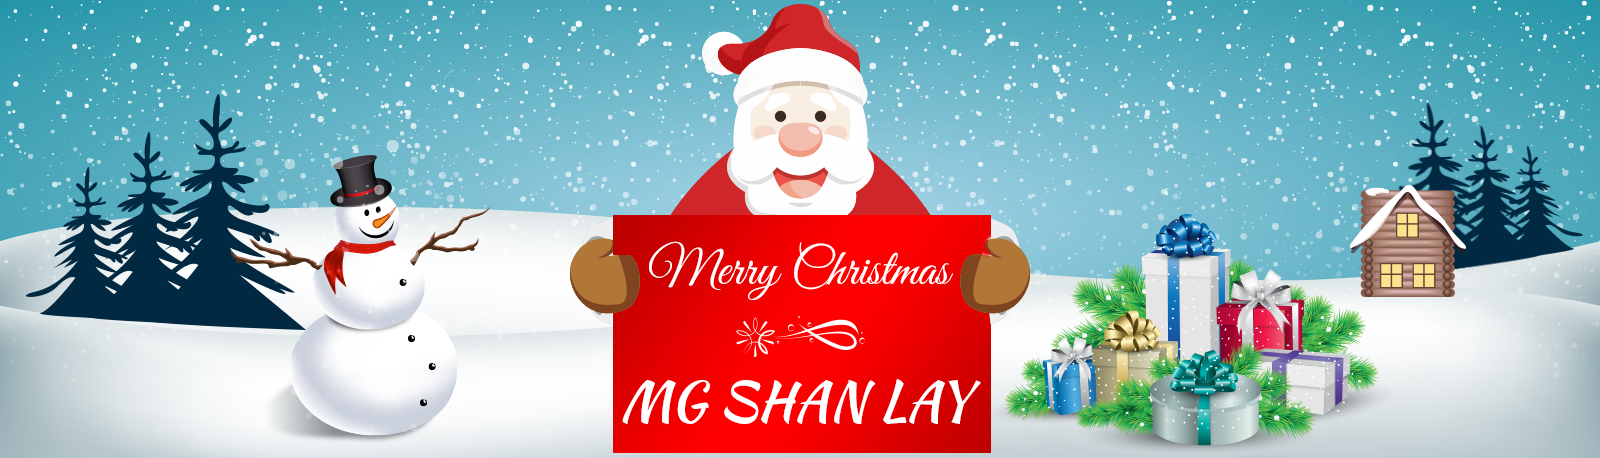 Mg Shan Lay